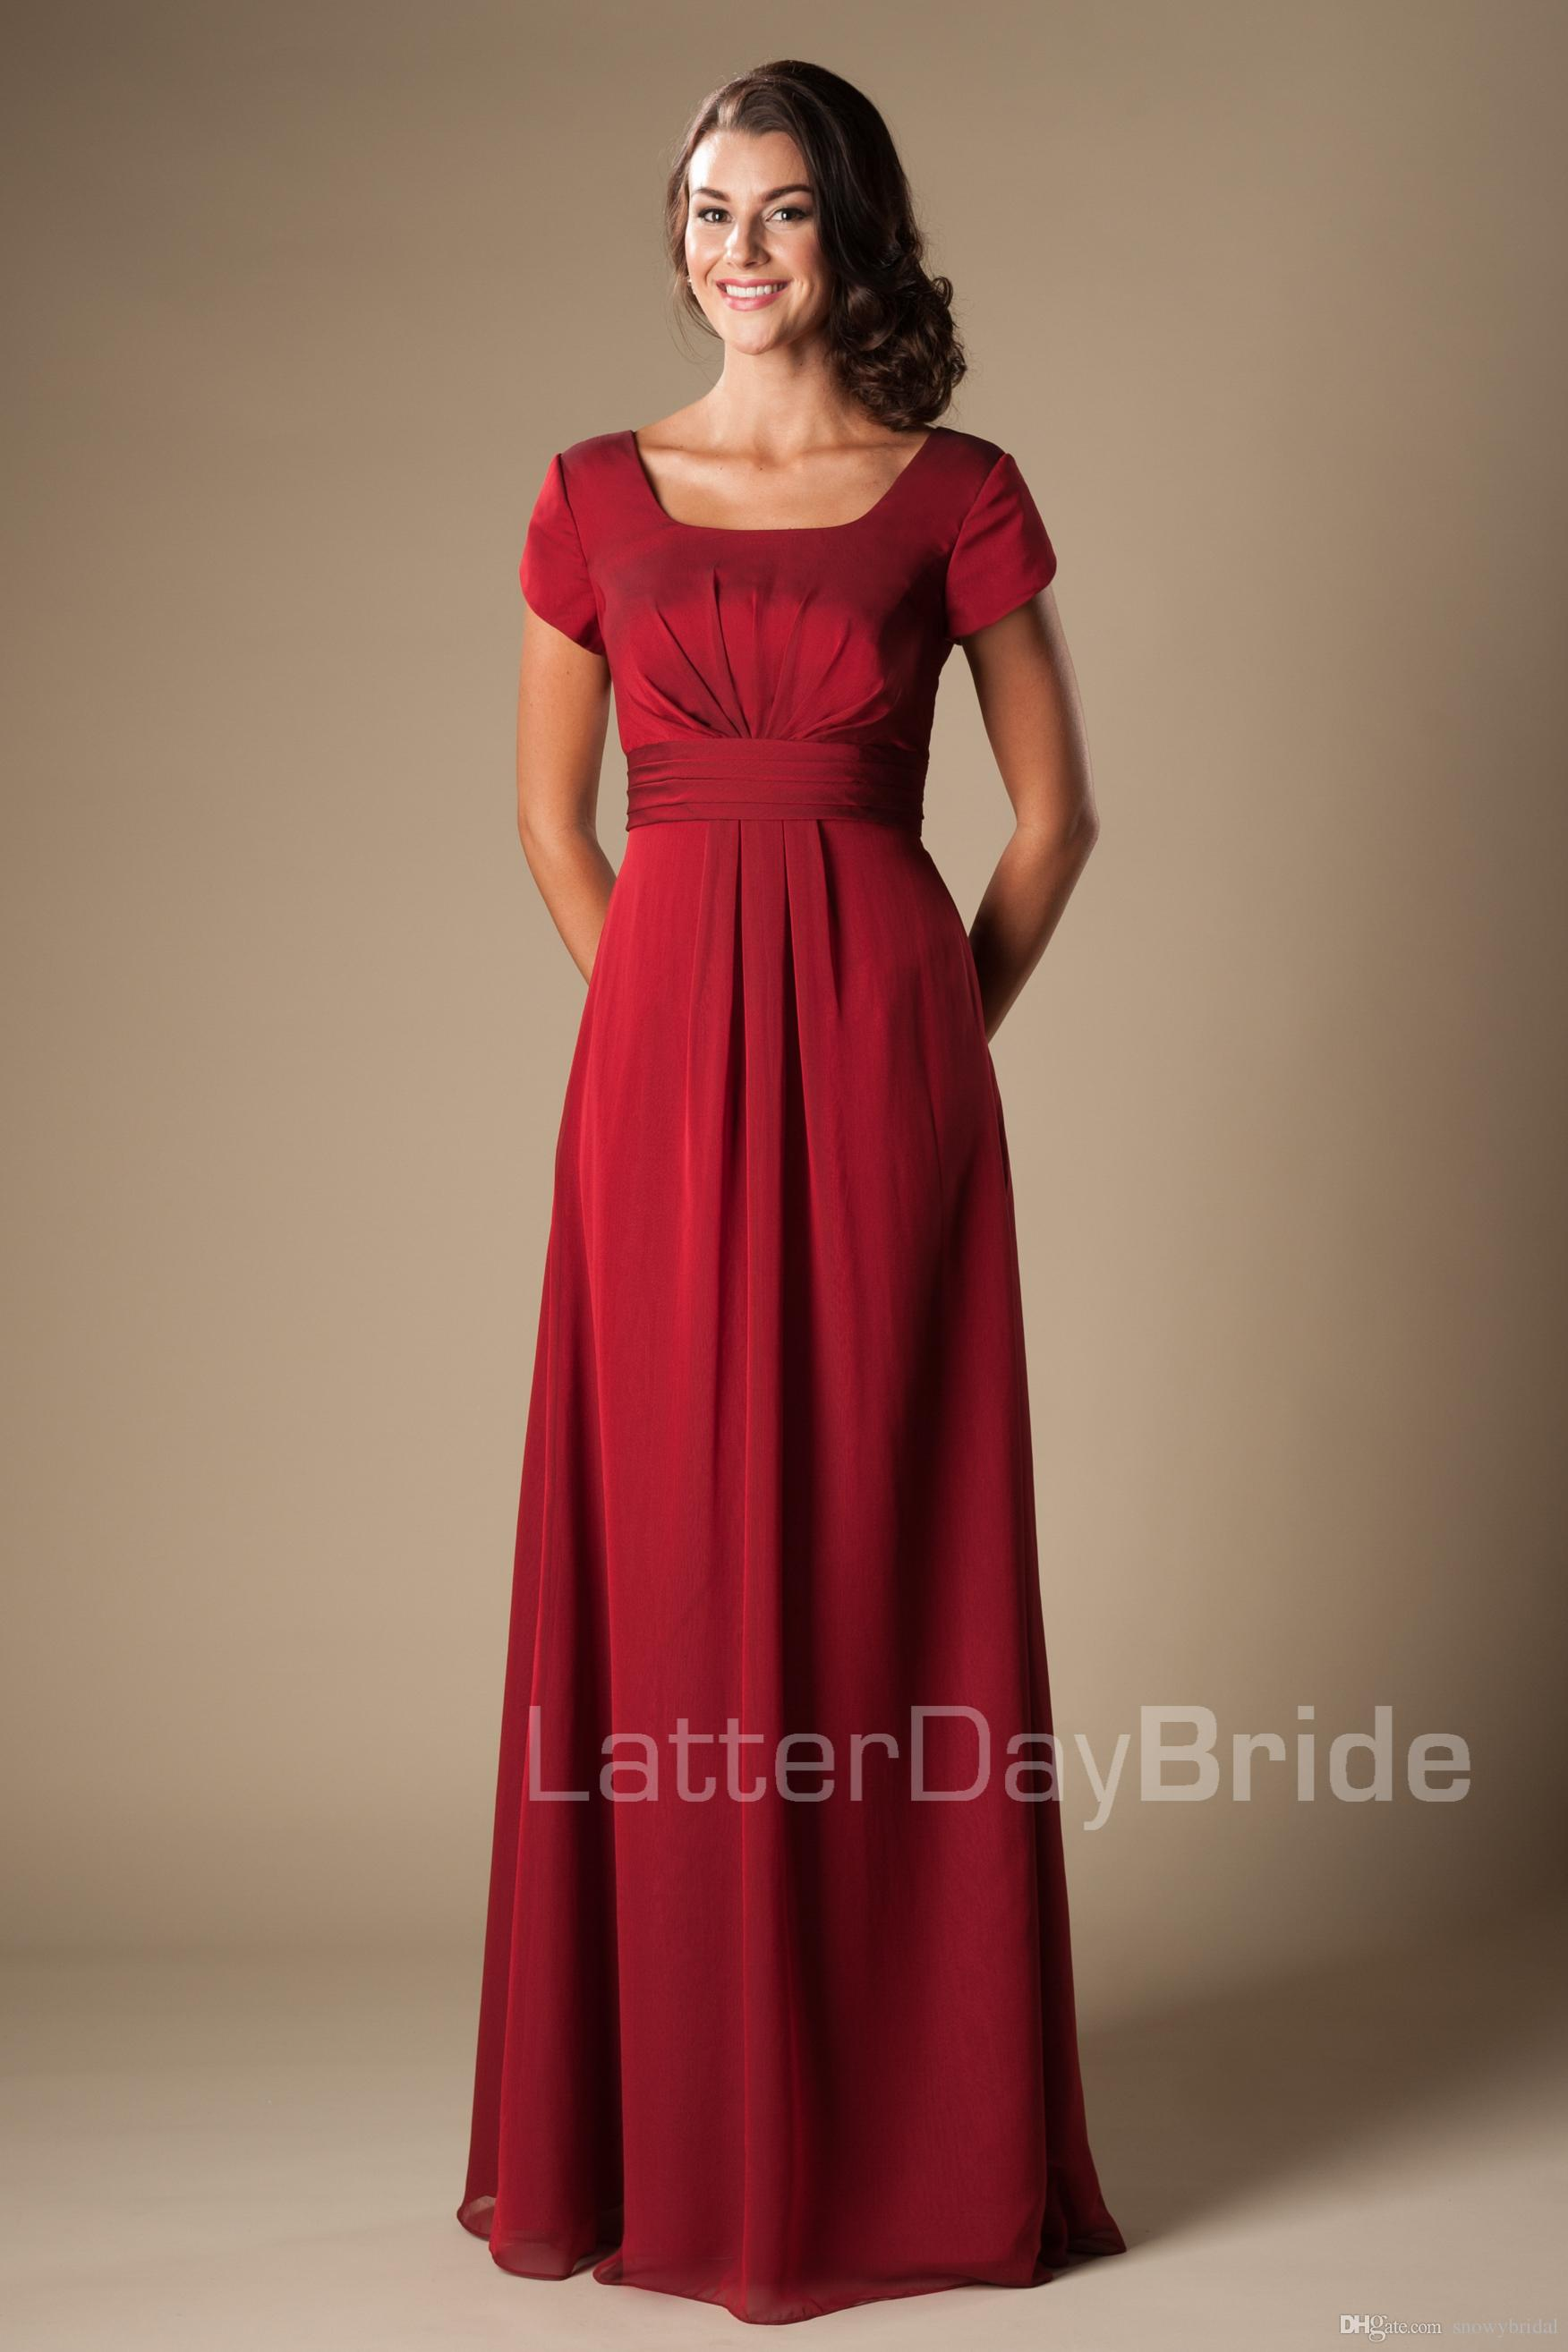 Summer red chiffon modest bridesmaid dresses with short sleeves summer red chiffon modest bridesmaid dresses with short sleeves long floor a line temple wedding party dresses bridesmaid robes custom made modest ombrellifo Image collections